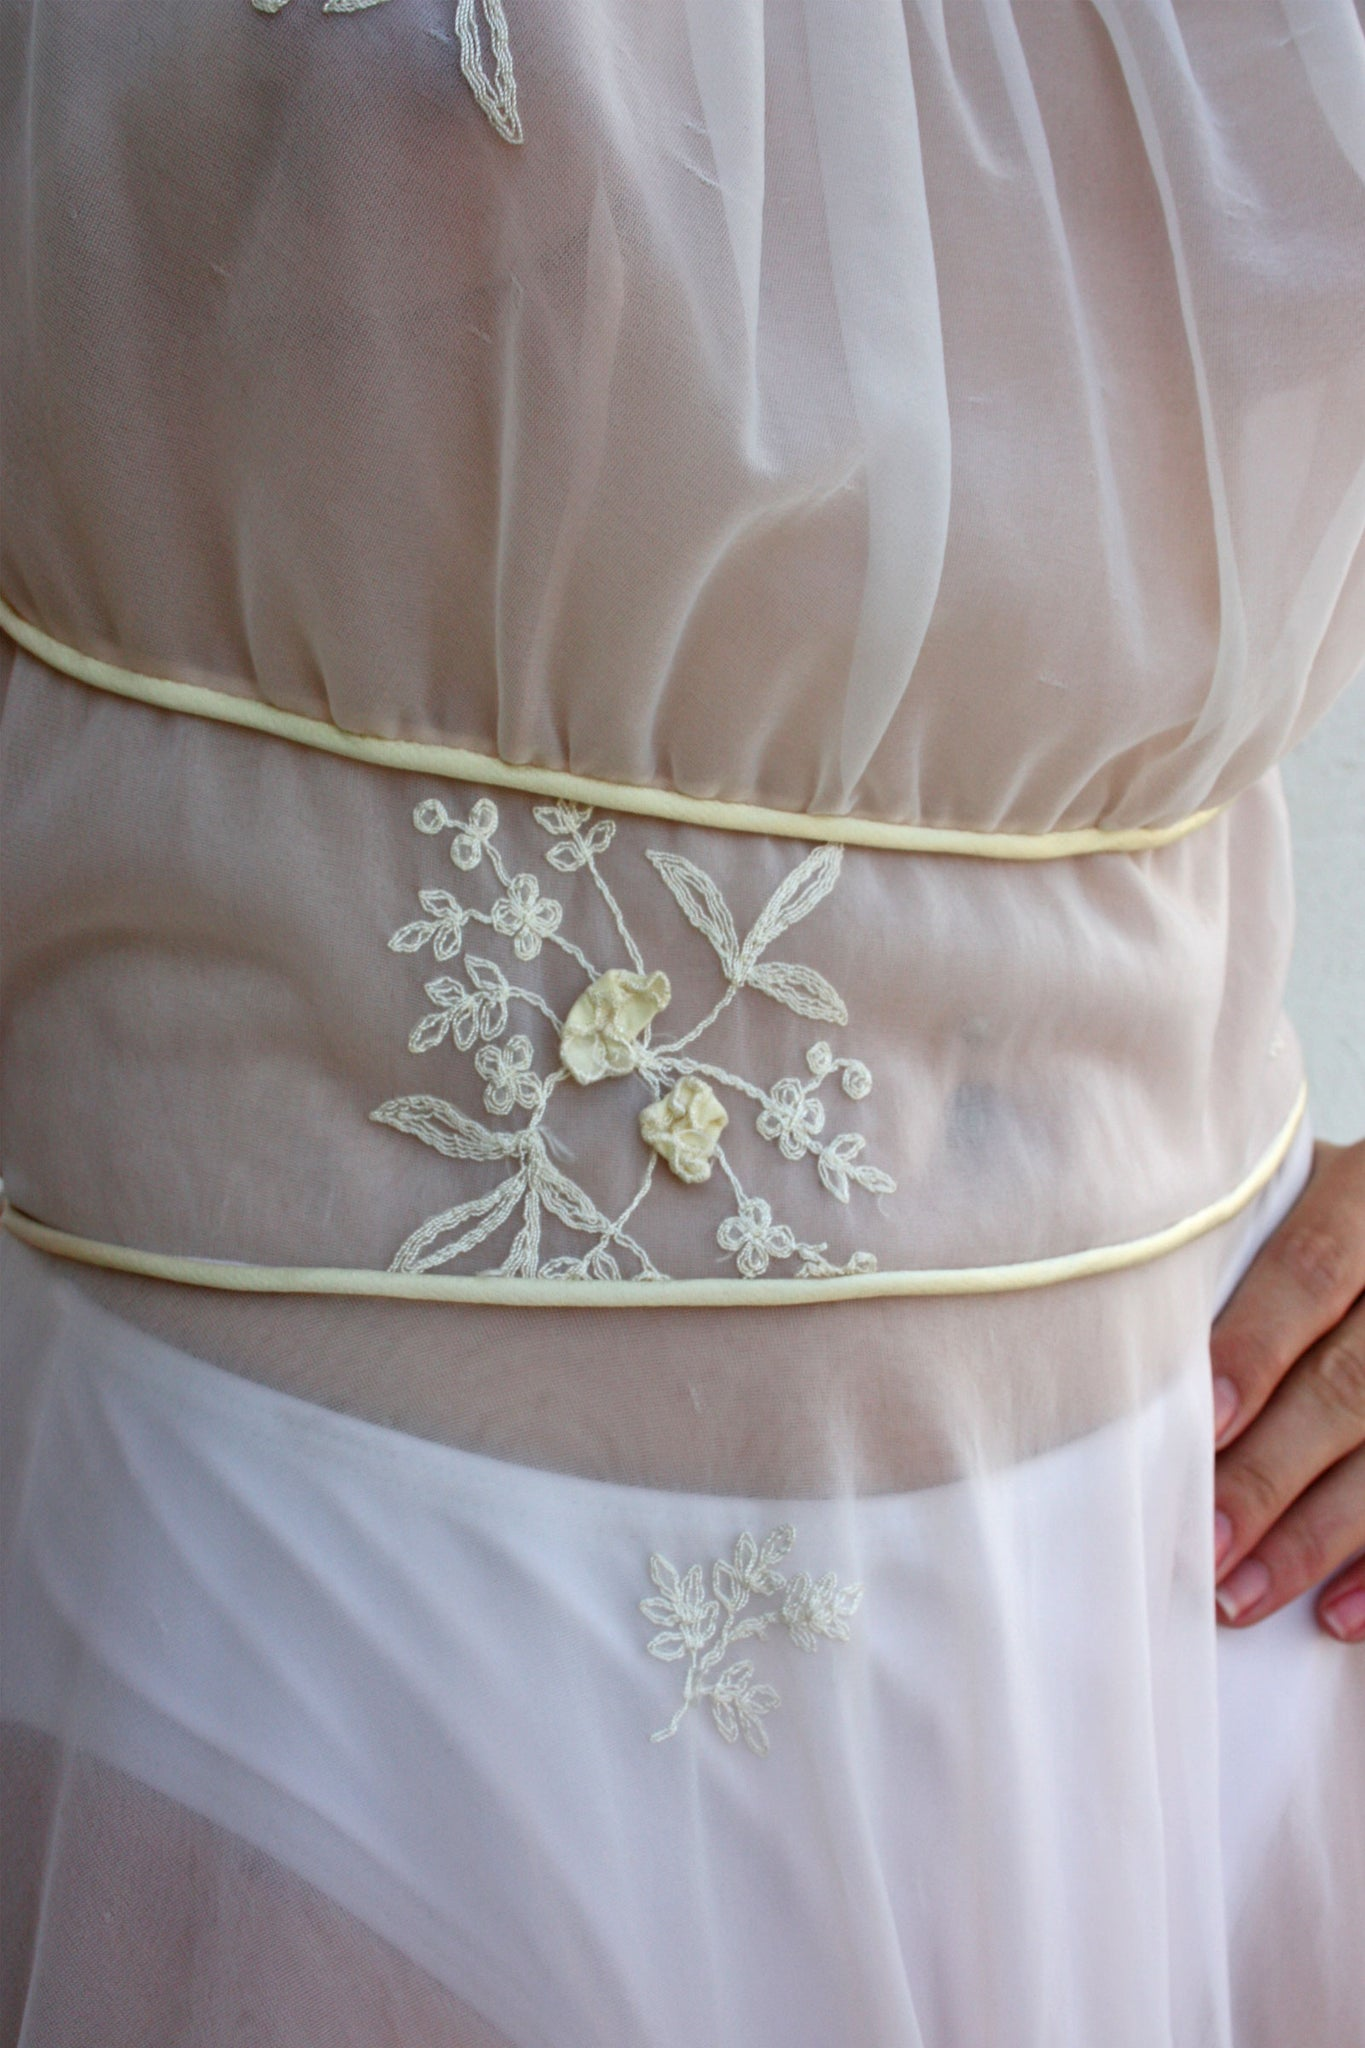 Vintage embroidery details - Shop SoLovesVintage